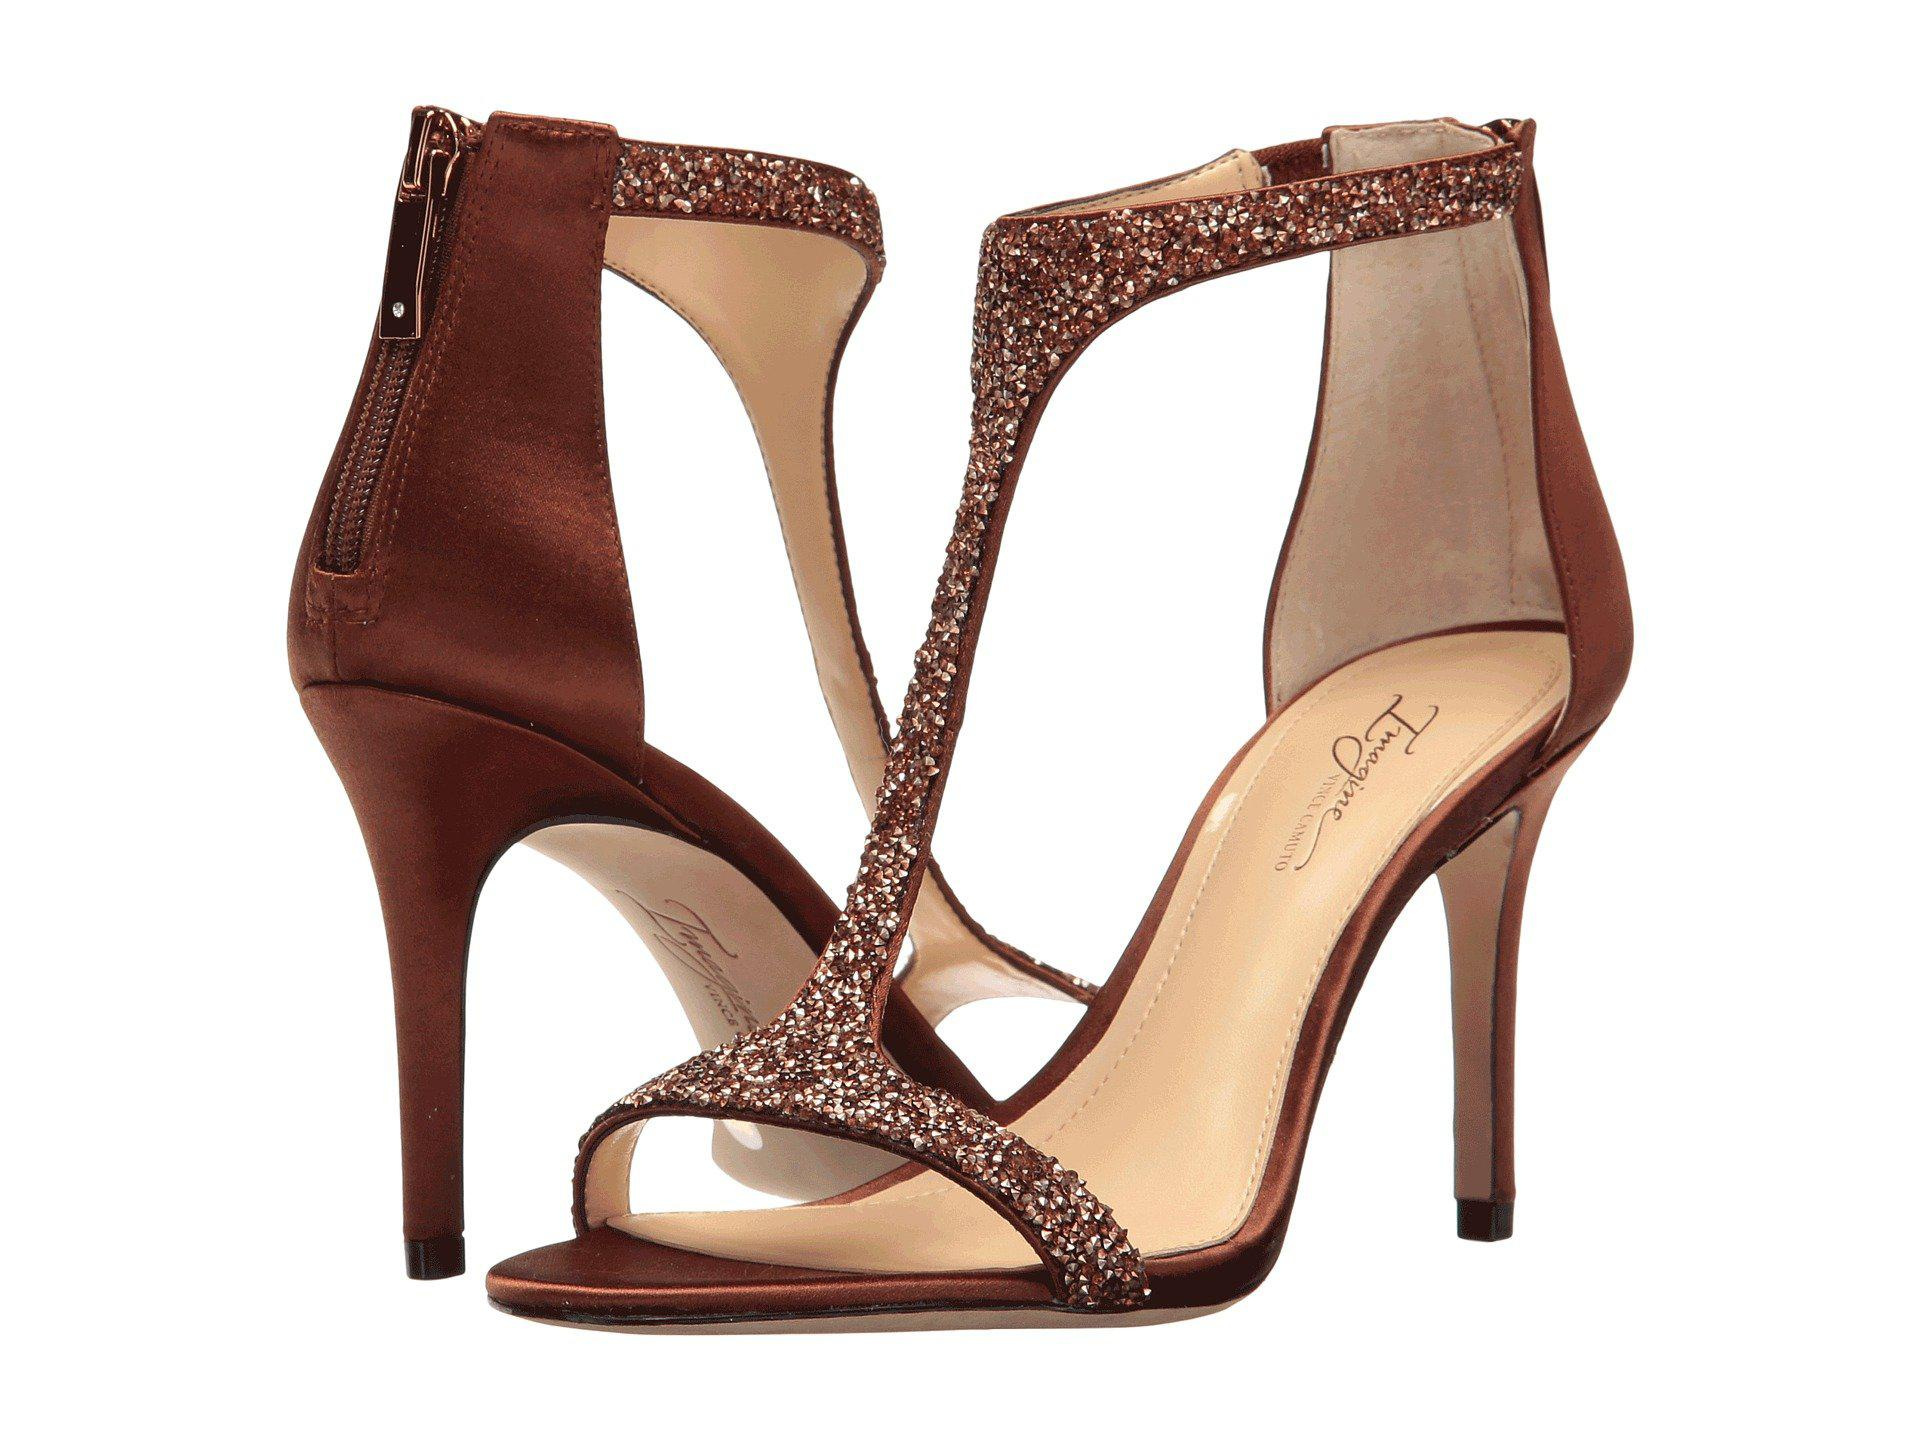 e9b56b3a5cf8 Lyst - Imagine Vince Camuto Phoebe in Brown - Save 54%